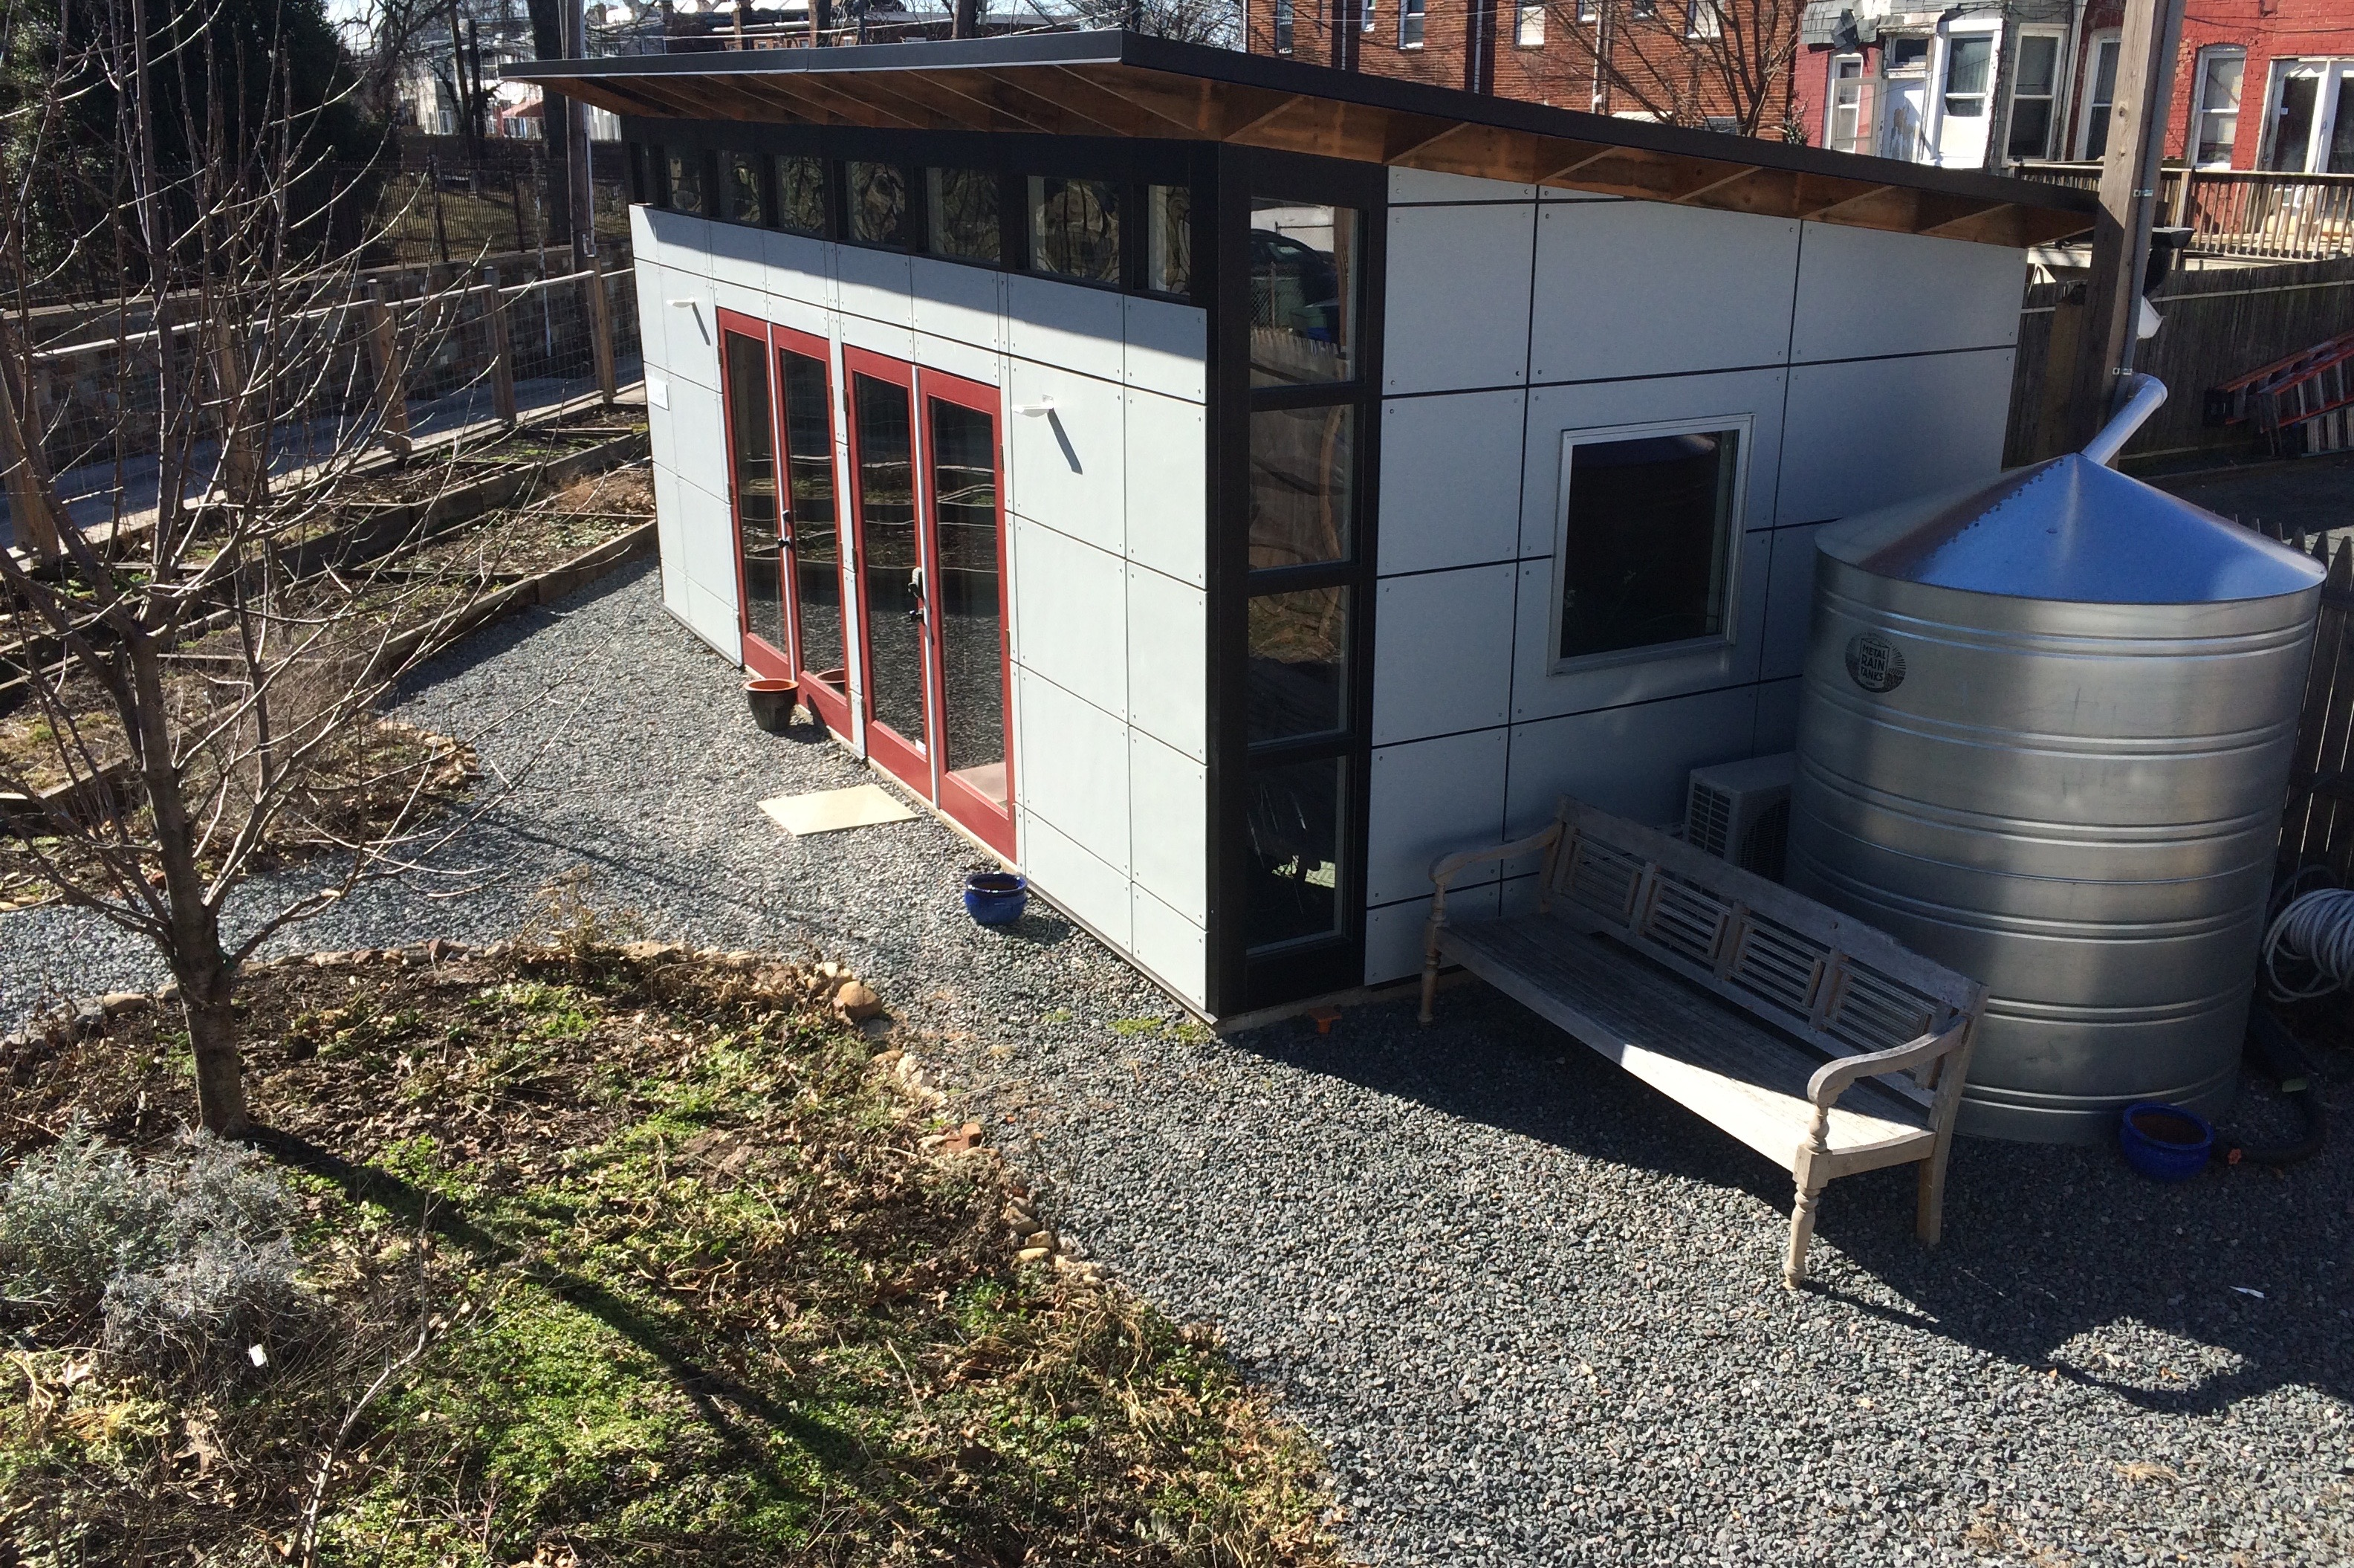 living storage ideas shed prefab converted studio the house to bedroom sheds diy houses into a inside tin bathroom kate studioshedcom with plans convert both turning livable room around make and how guest granny flat play kids quarters kit converting turn backyard